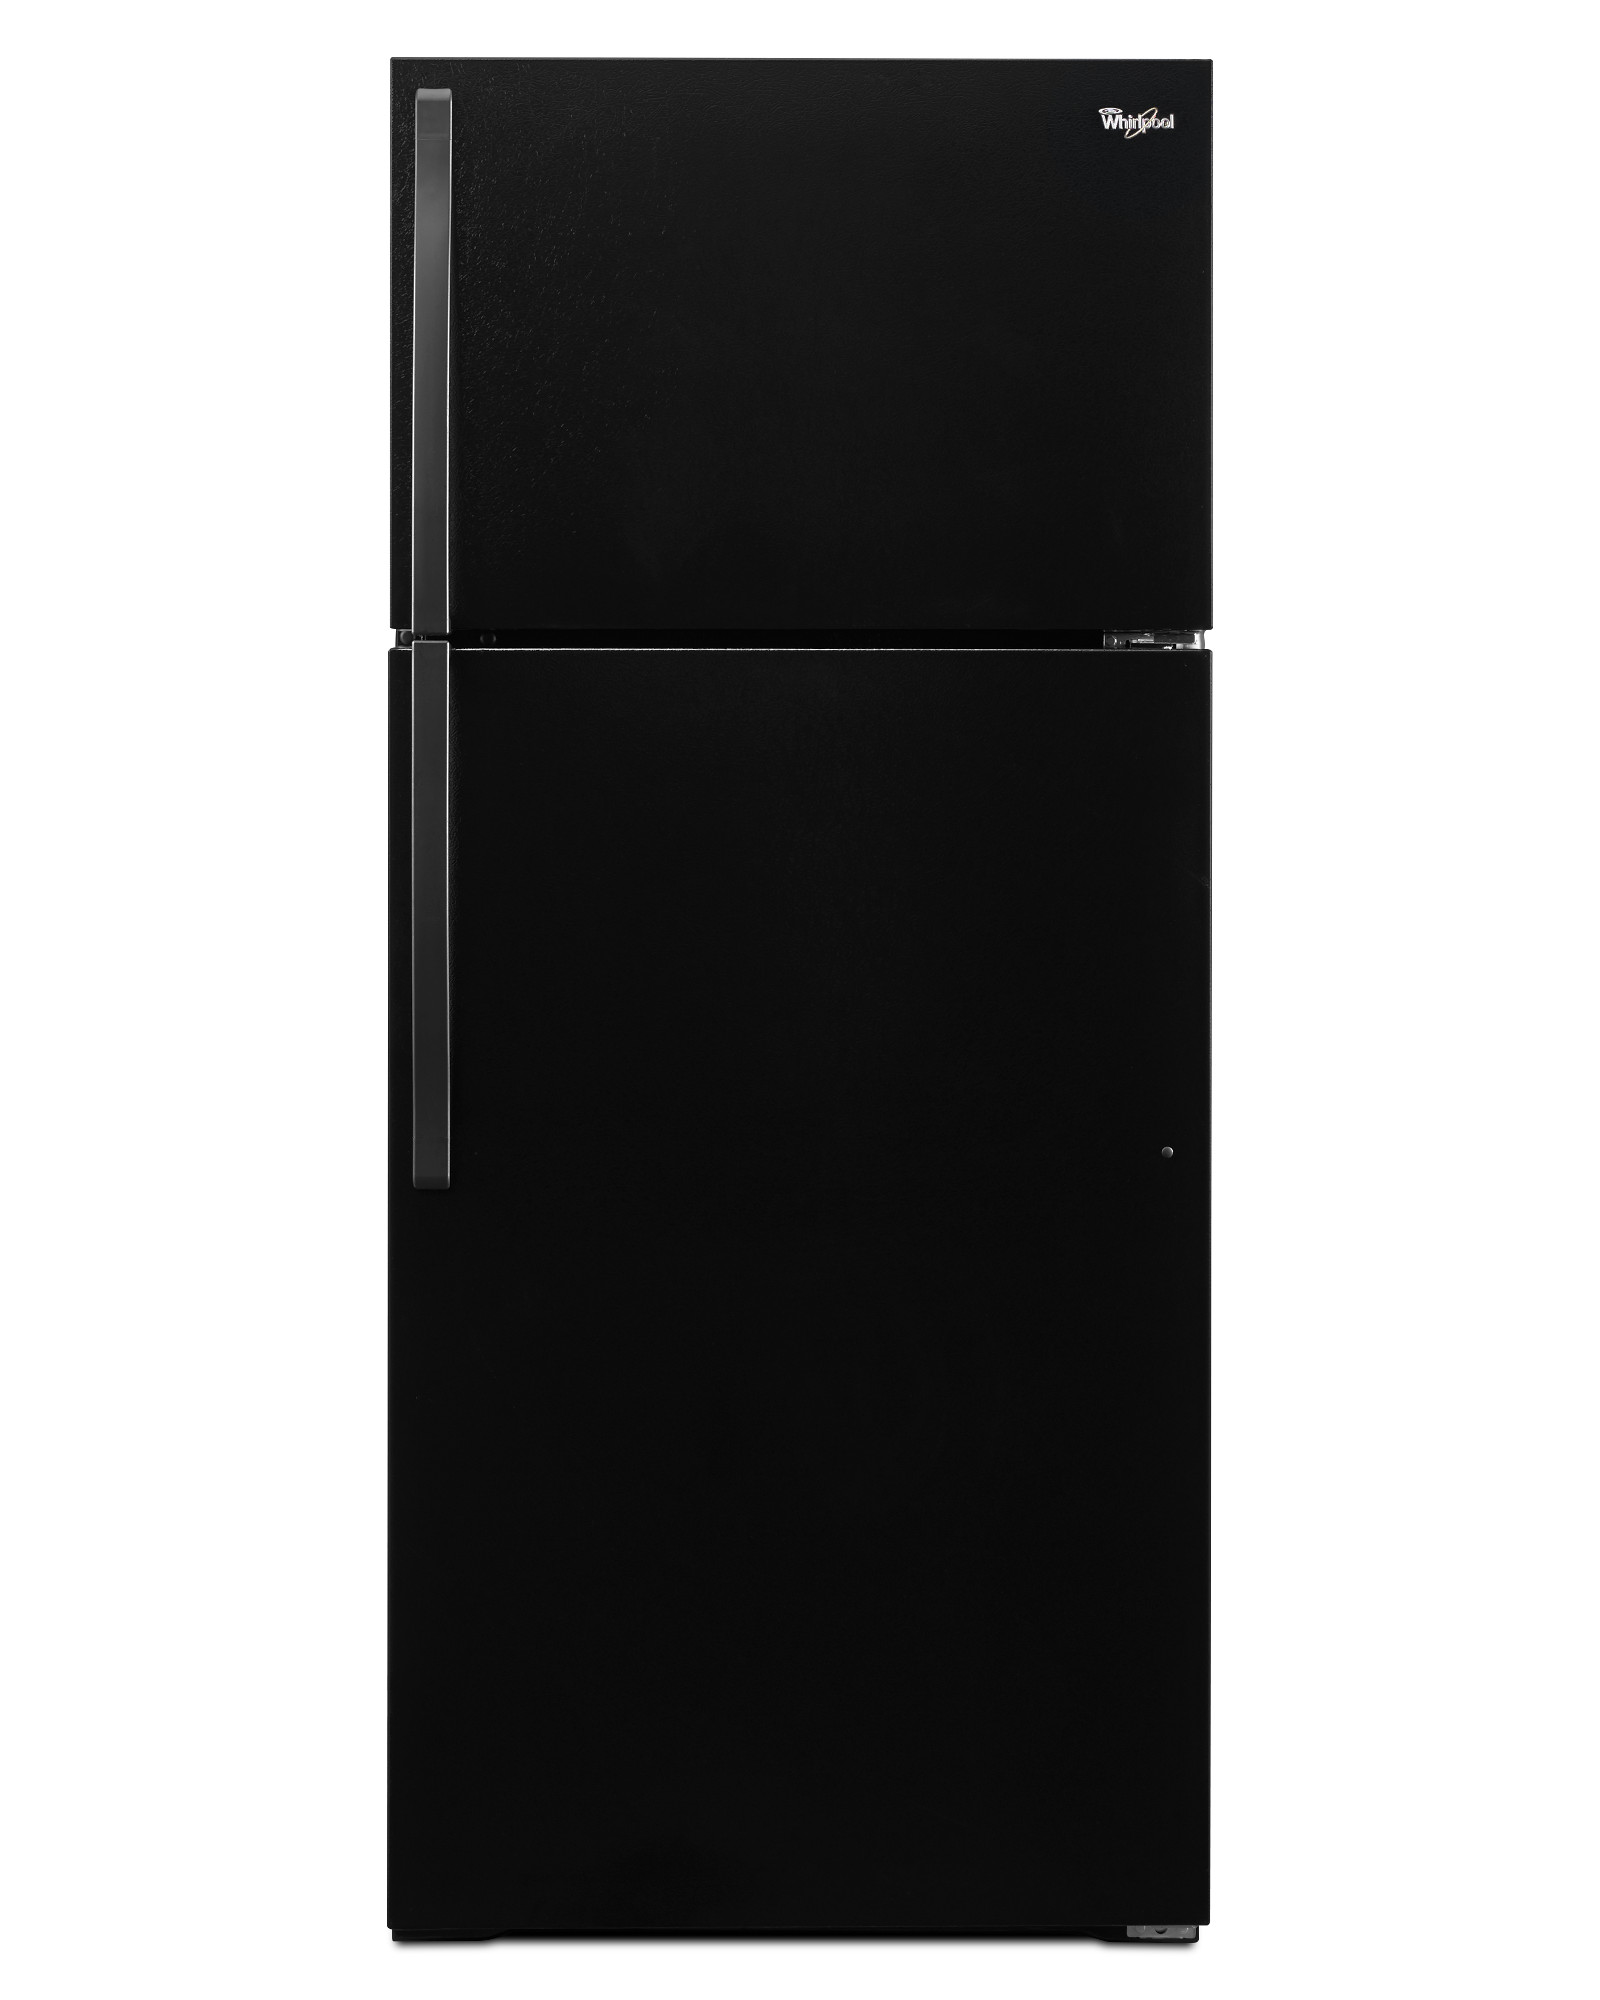 14 Cu Ft Refrigerator Whirlpool Wrt134tfdb 14 Cu Ft Top Freezer Refrigerator Black